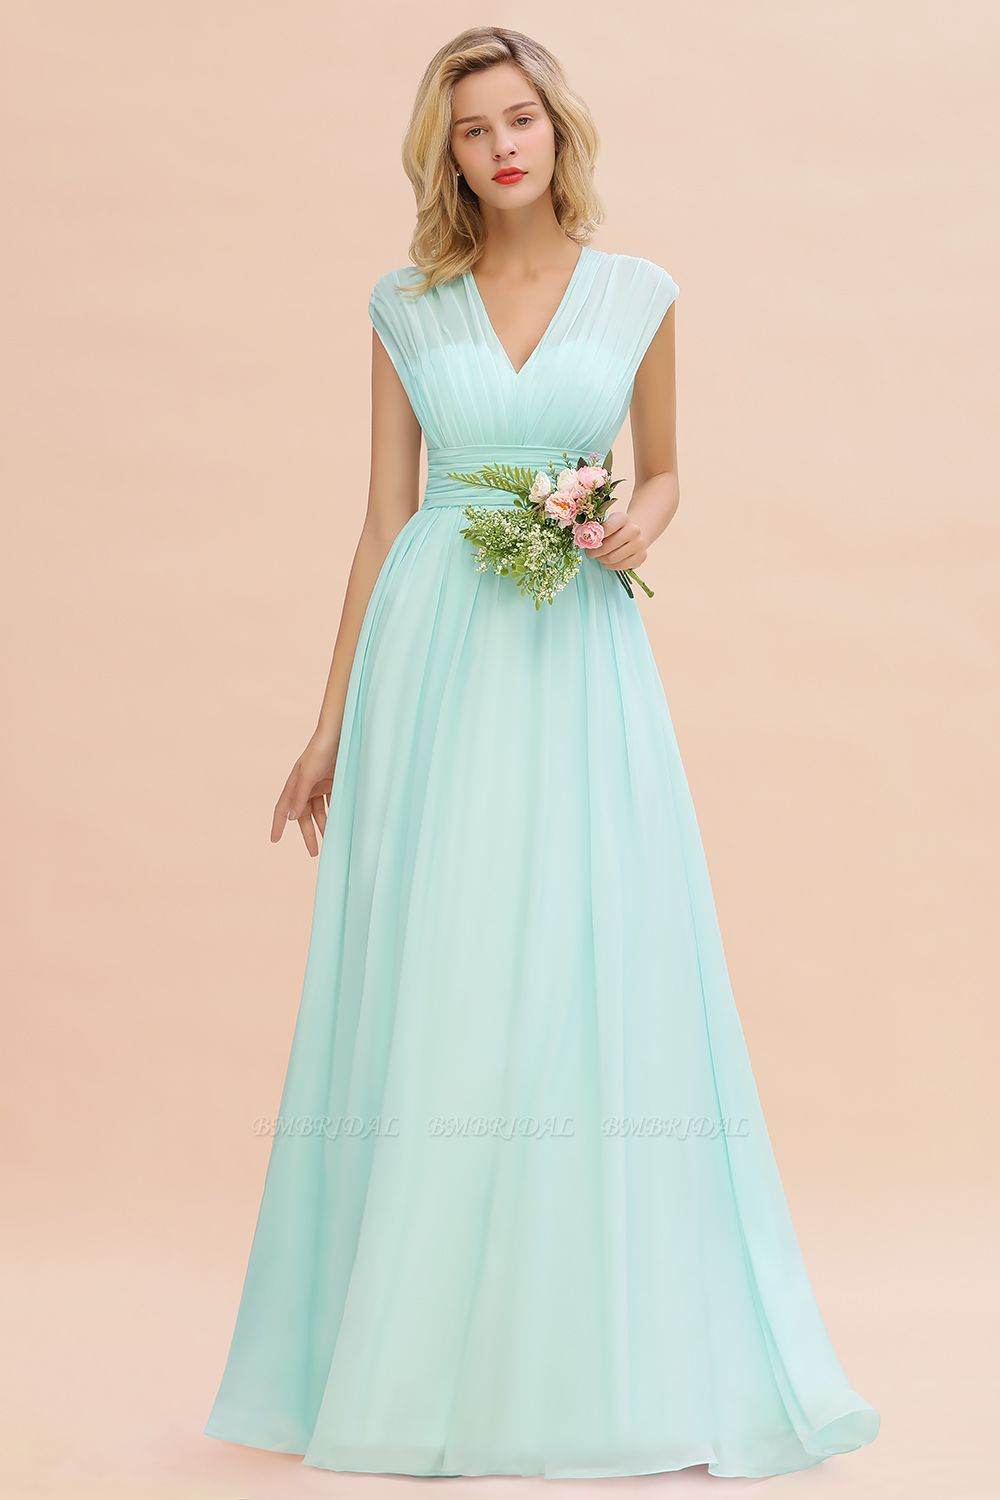 Elegant Chiffon V-Neck Ruffle Long Bridesmaid Dresses Affordable